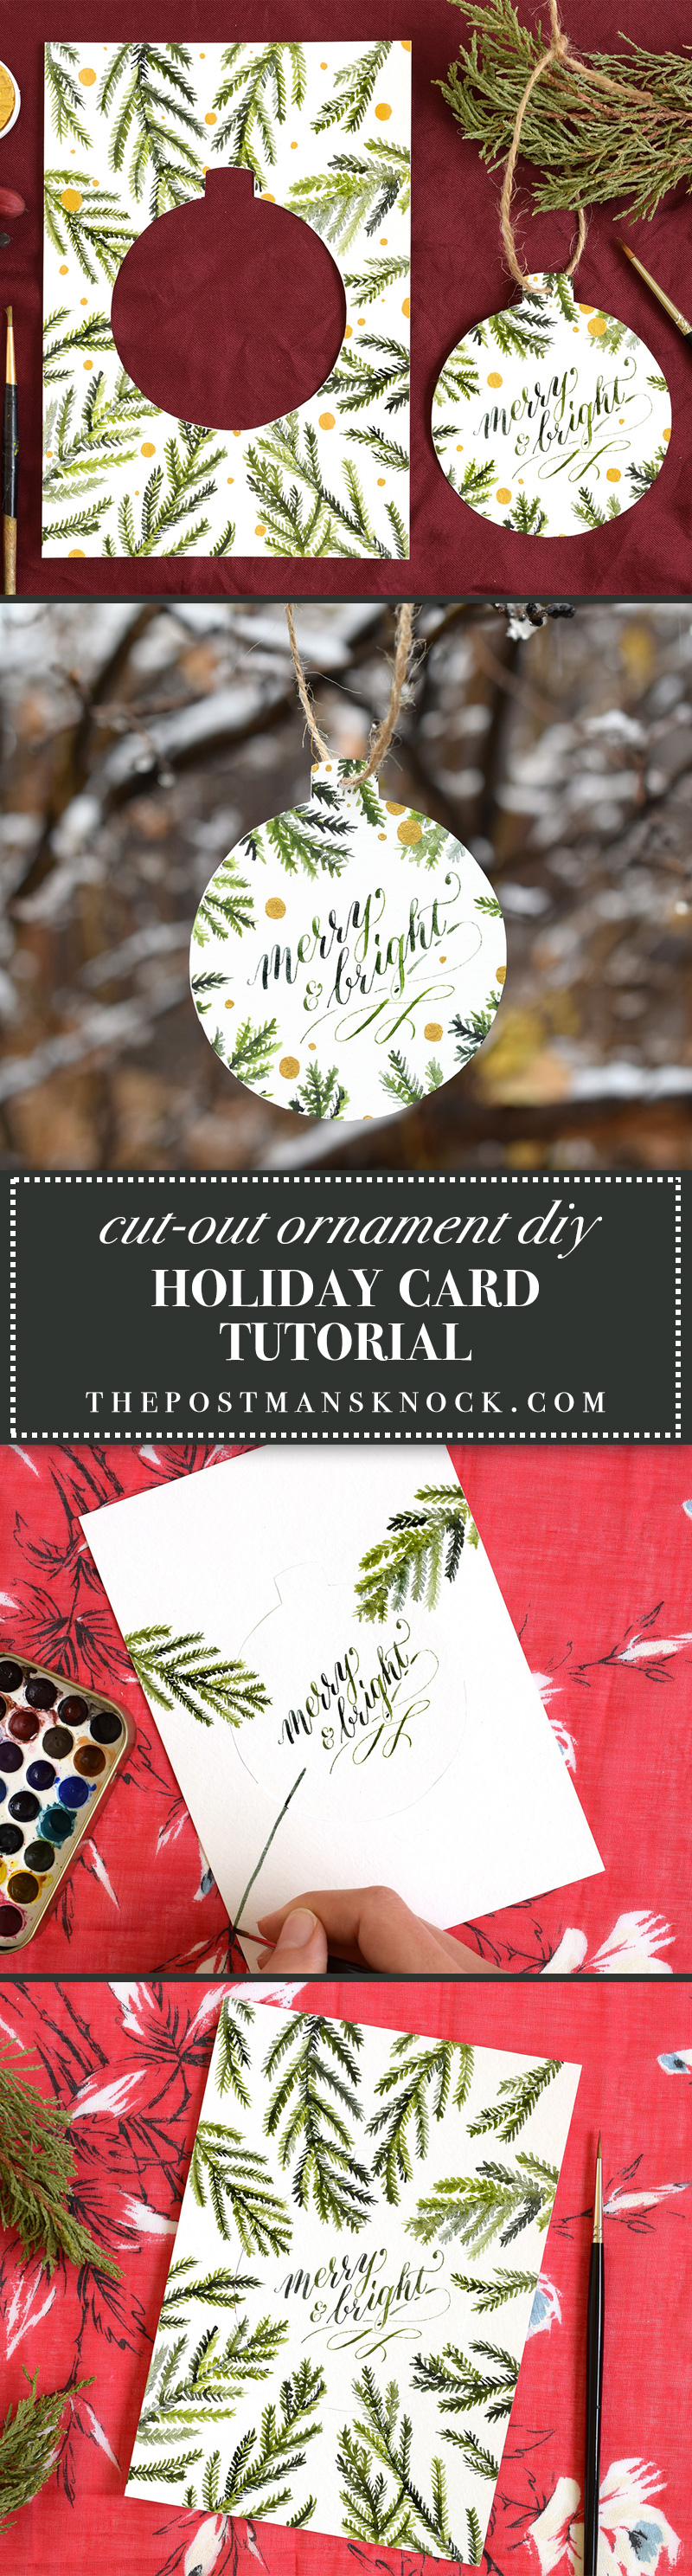 Cut Out Ornament DIY Holiday Card Tutorial | The Postman's Knock